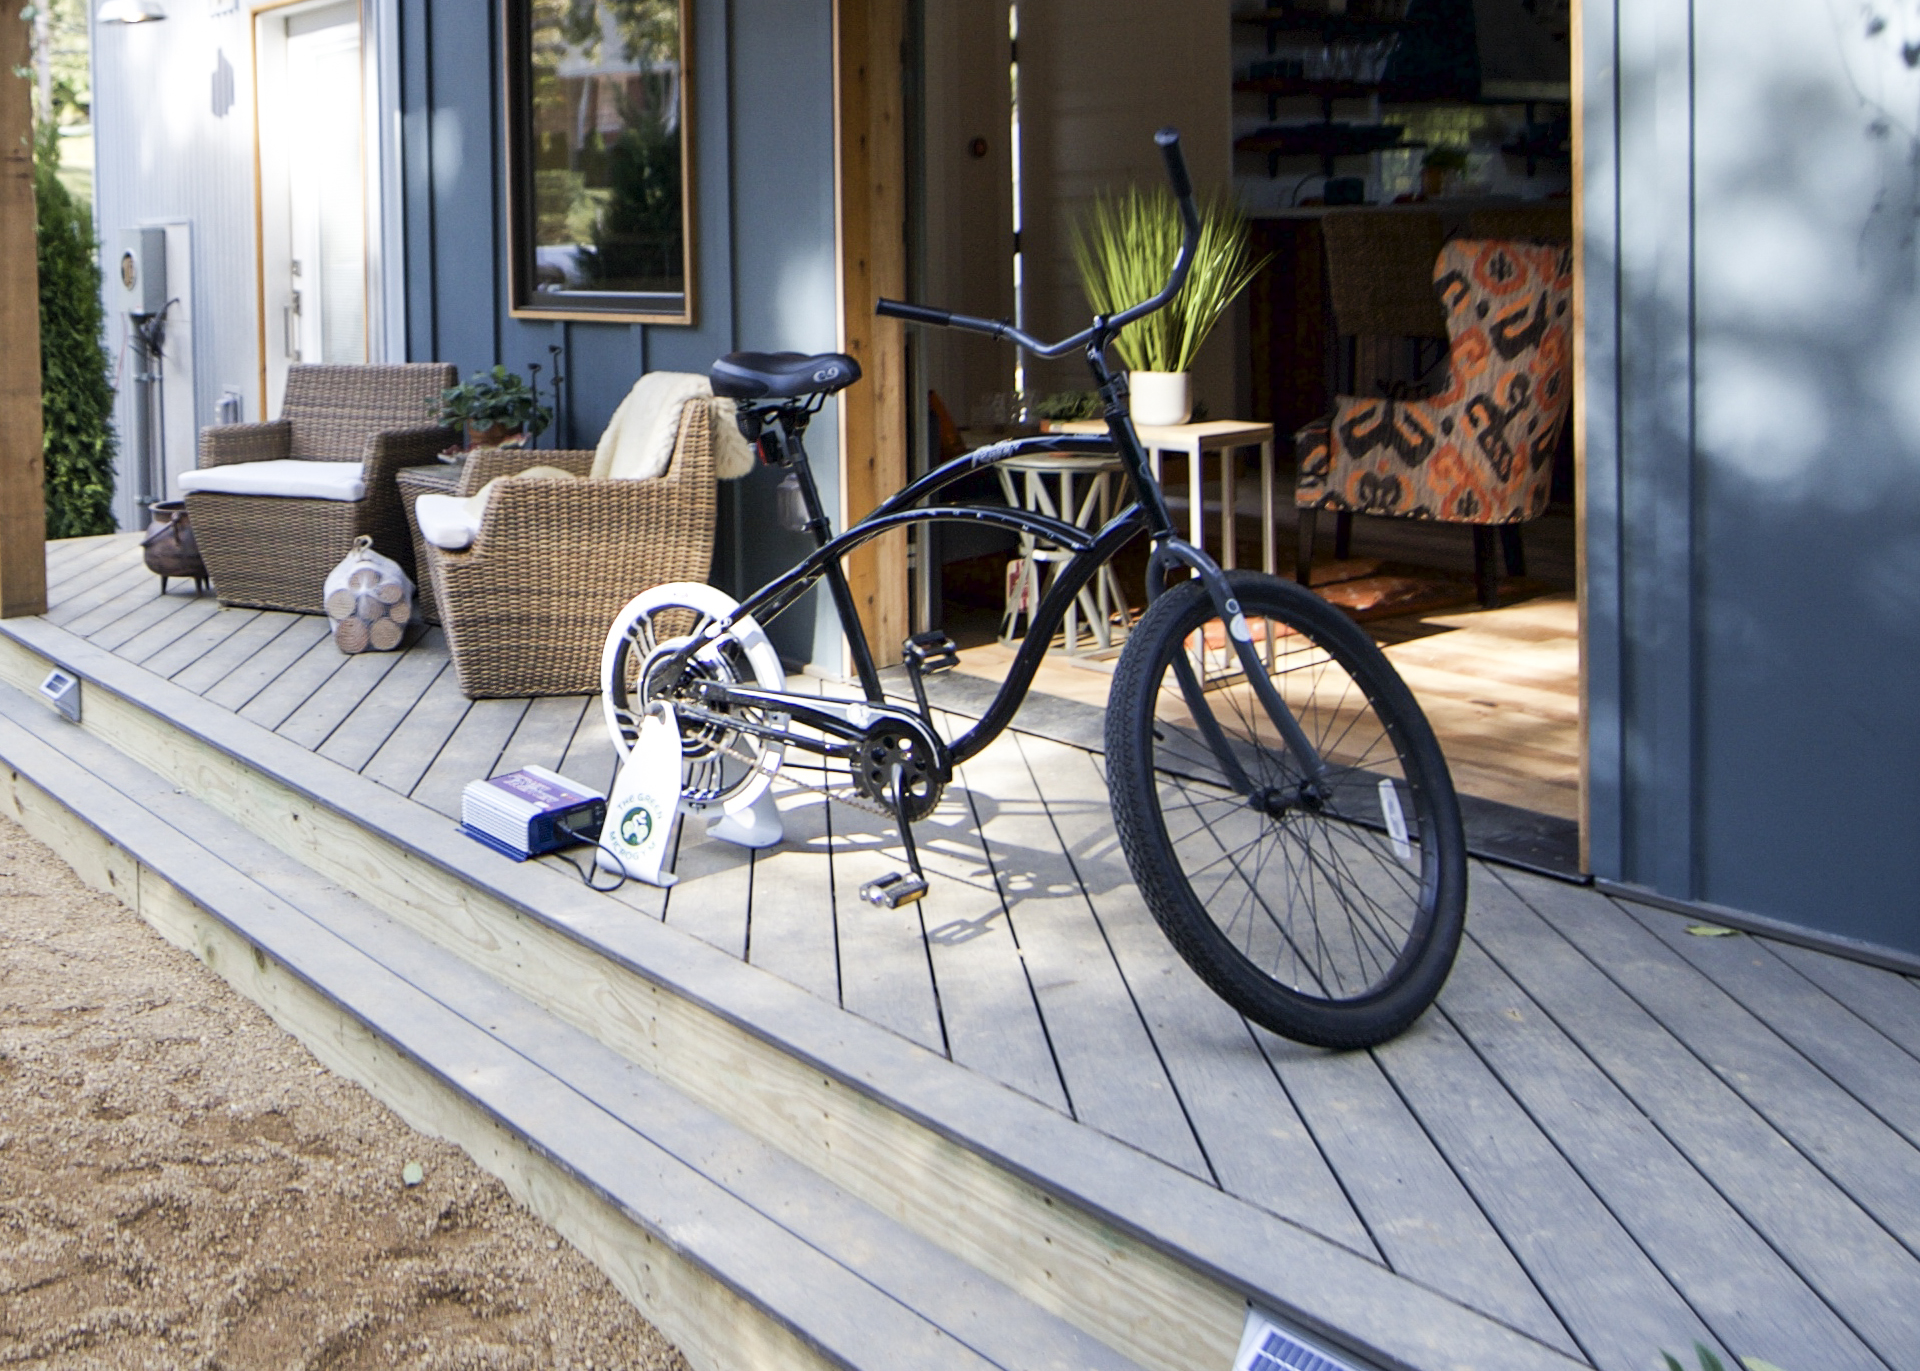 Urban Micro Home by Wind River Tiny Homes - glass garage door by Chattanooga Garage Door, bicycle that generates and stores power by Green Microgym, hooks up to most bikes